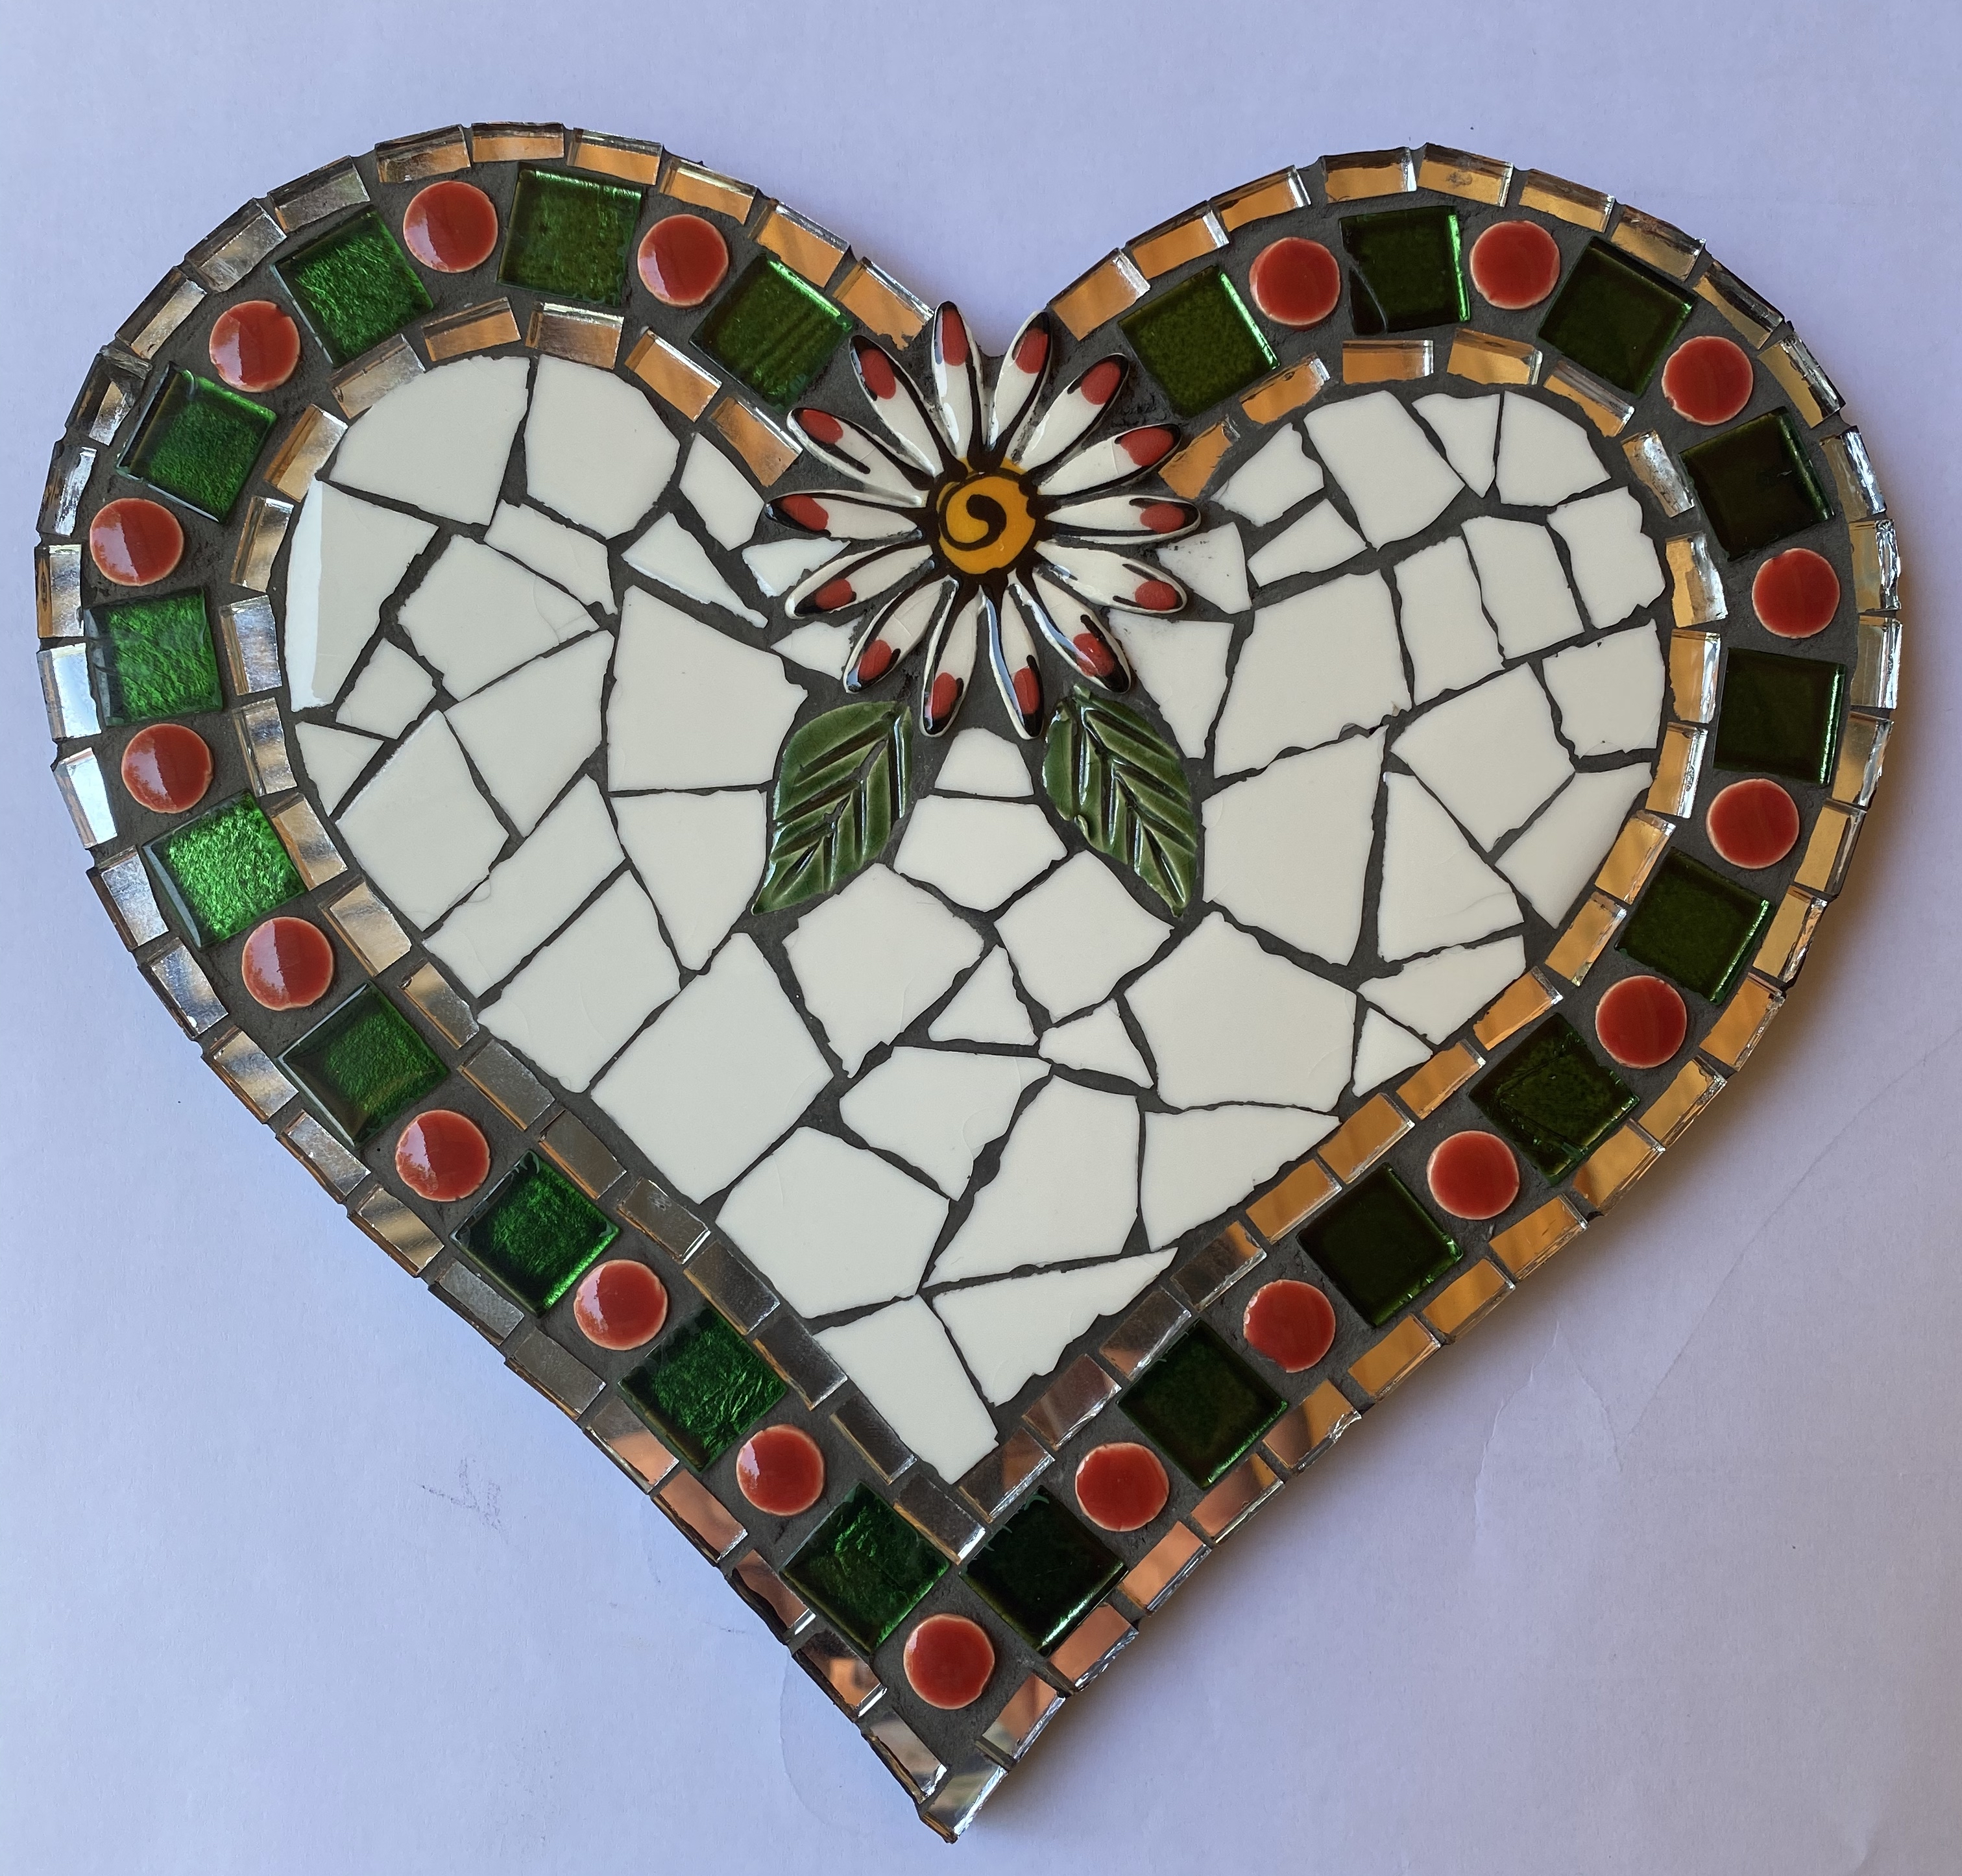 heart-kit-with-flower-and-green-tiles